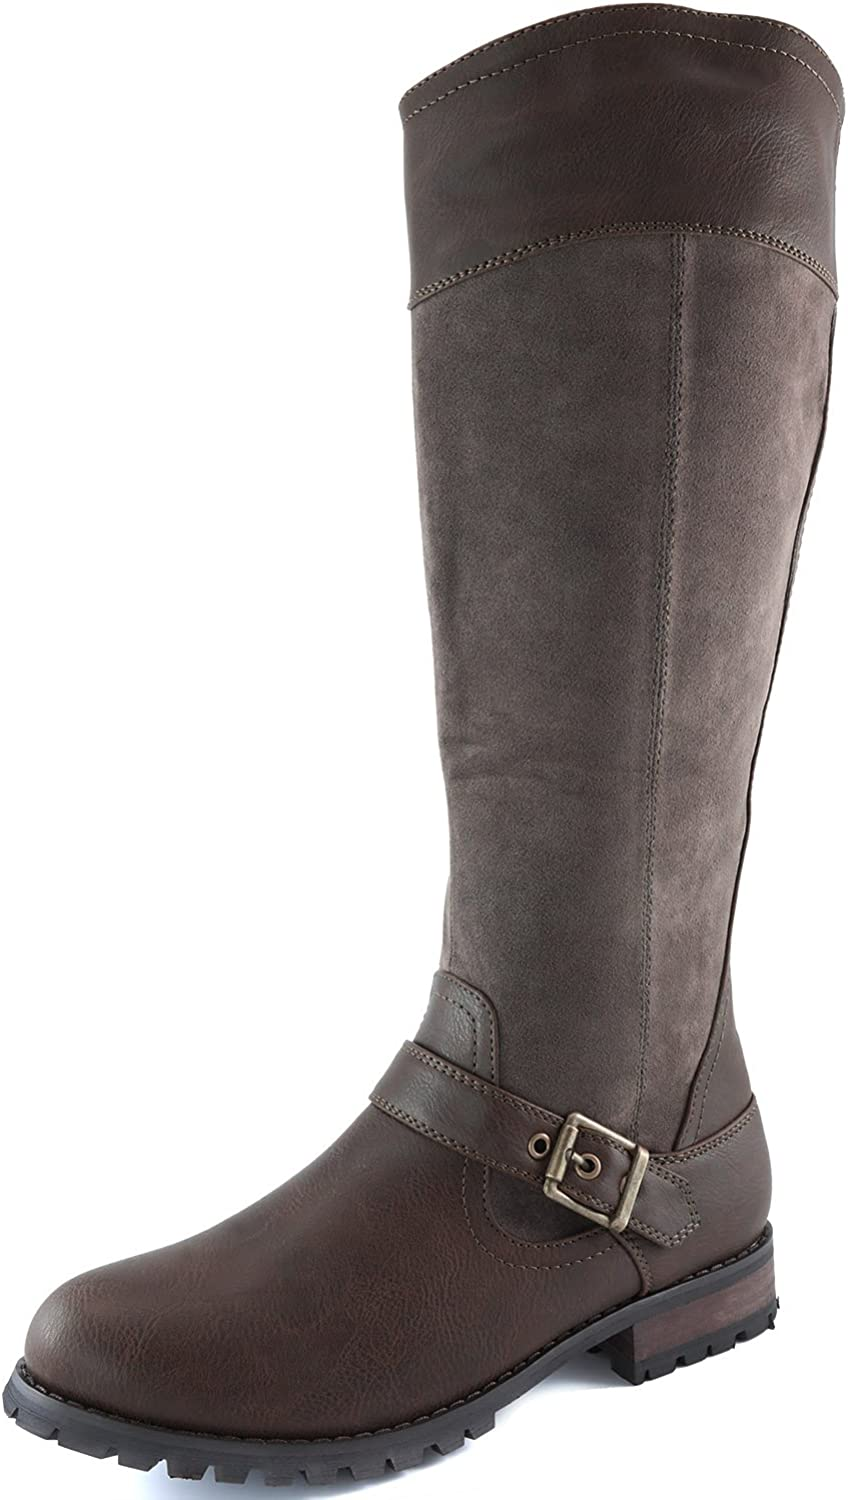 DailyShoes Women's Classic Boots